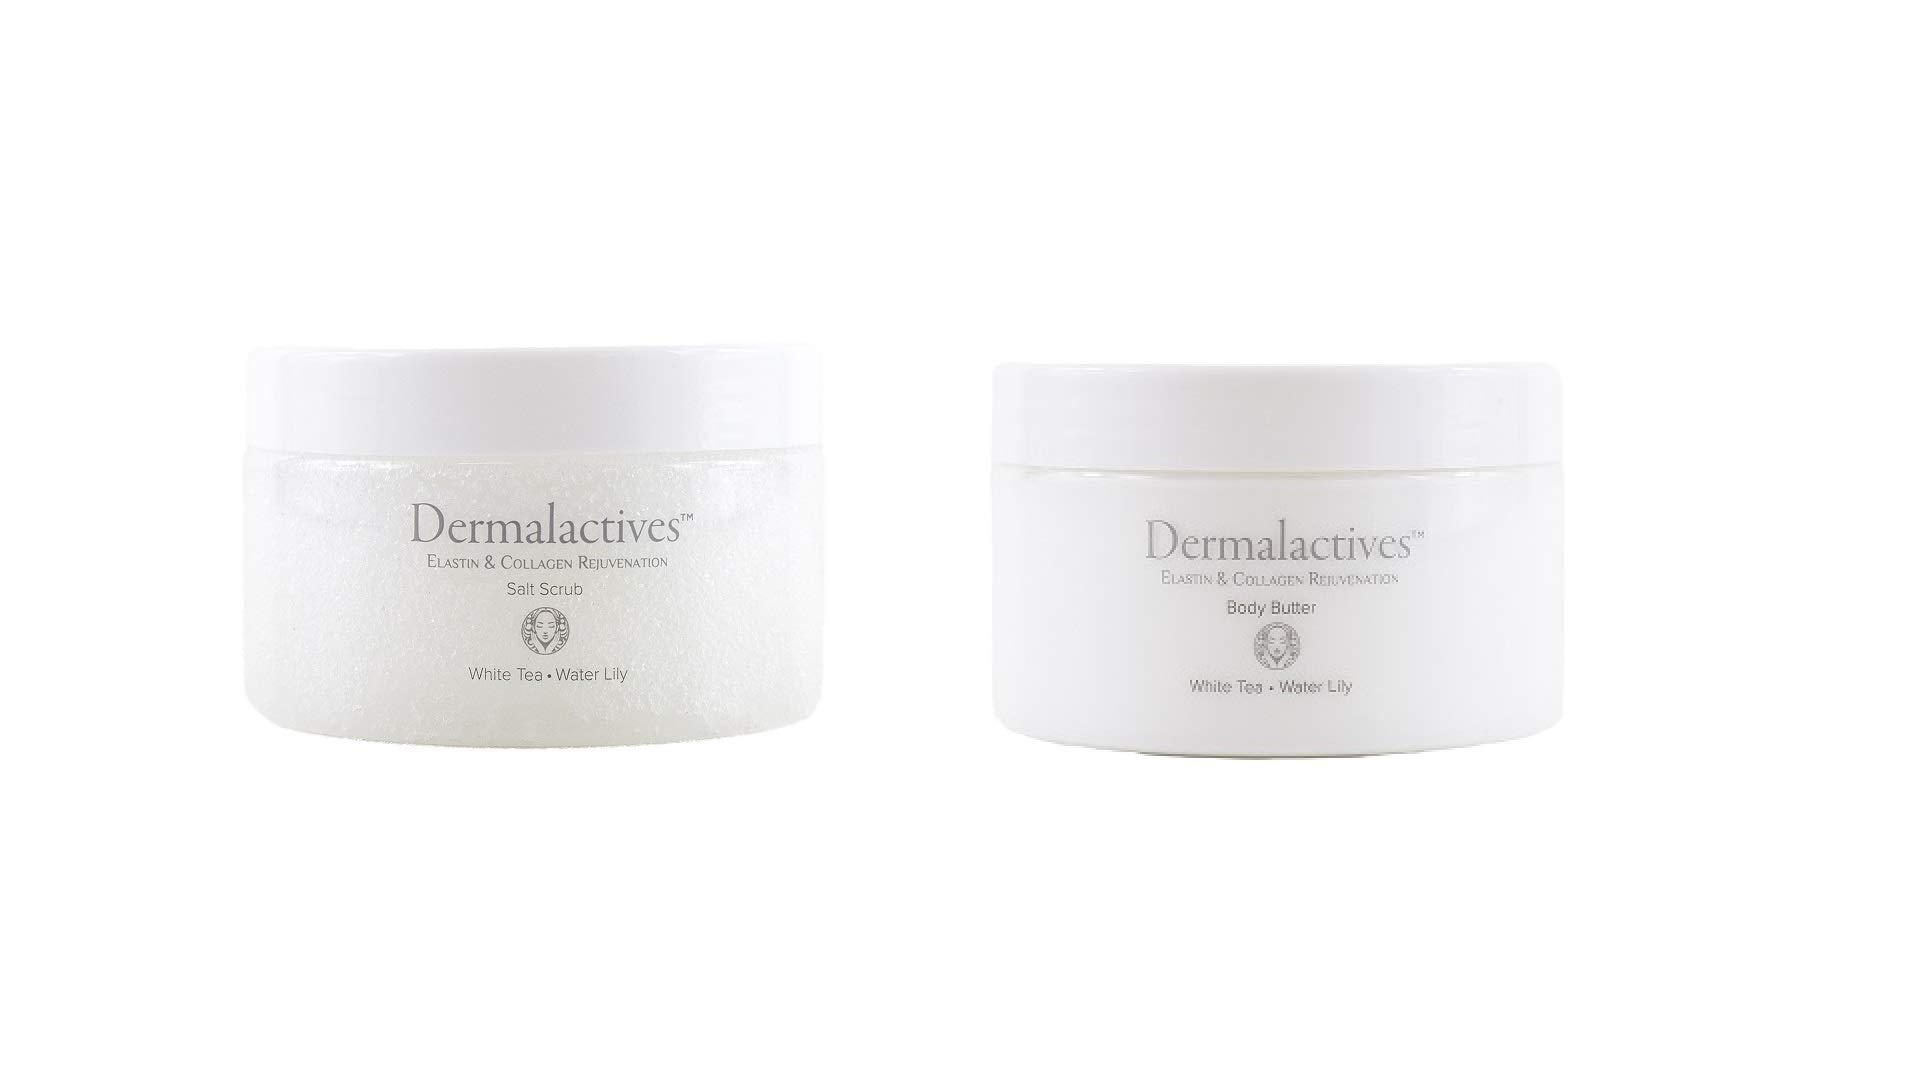 Dermalactives Replenishing, Nourishing & Exfoliating Body Scrub and Body Butter Set For a Smooth, Soft and Healthy Body Care Experience (White Tea – Water Lily BOTH)